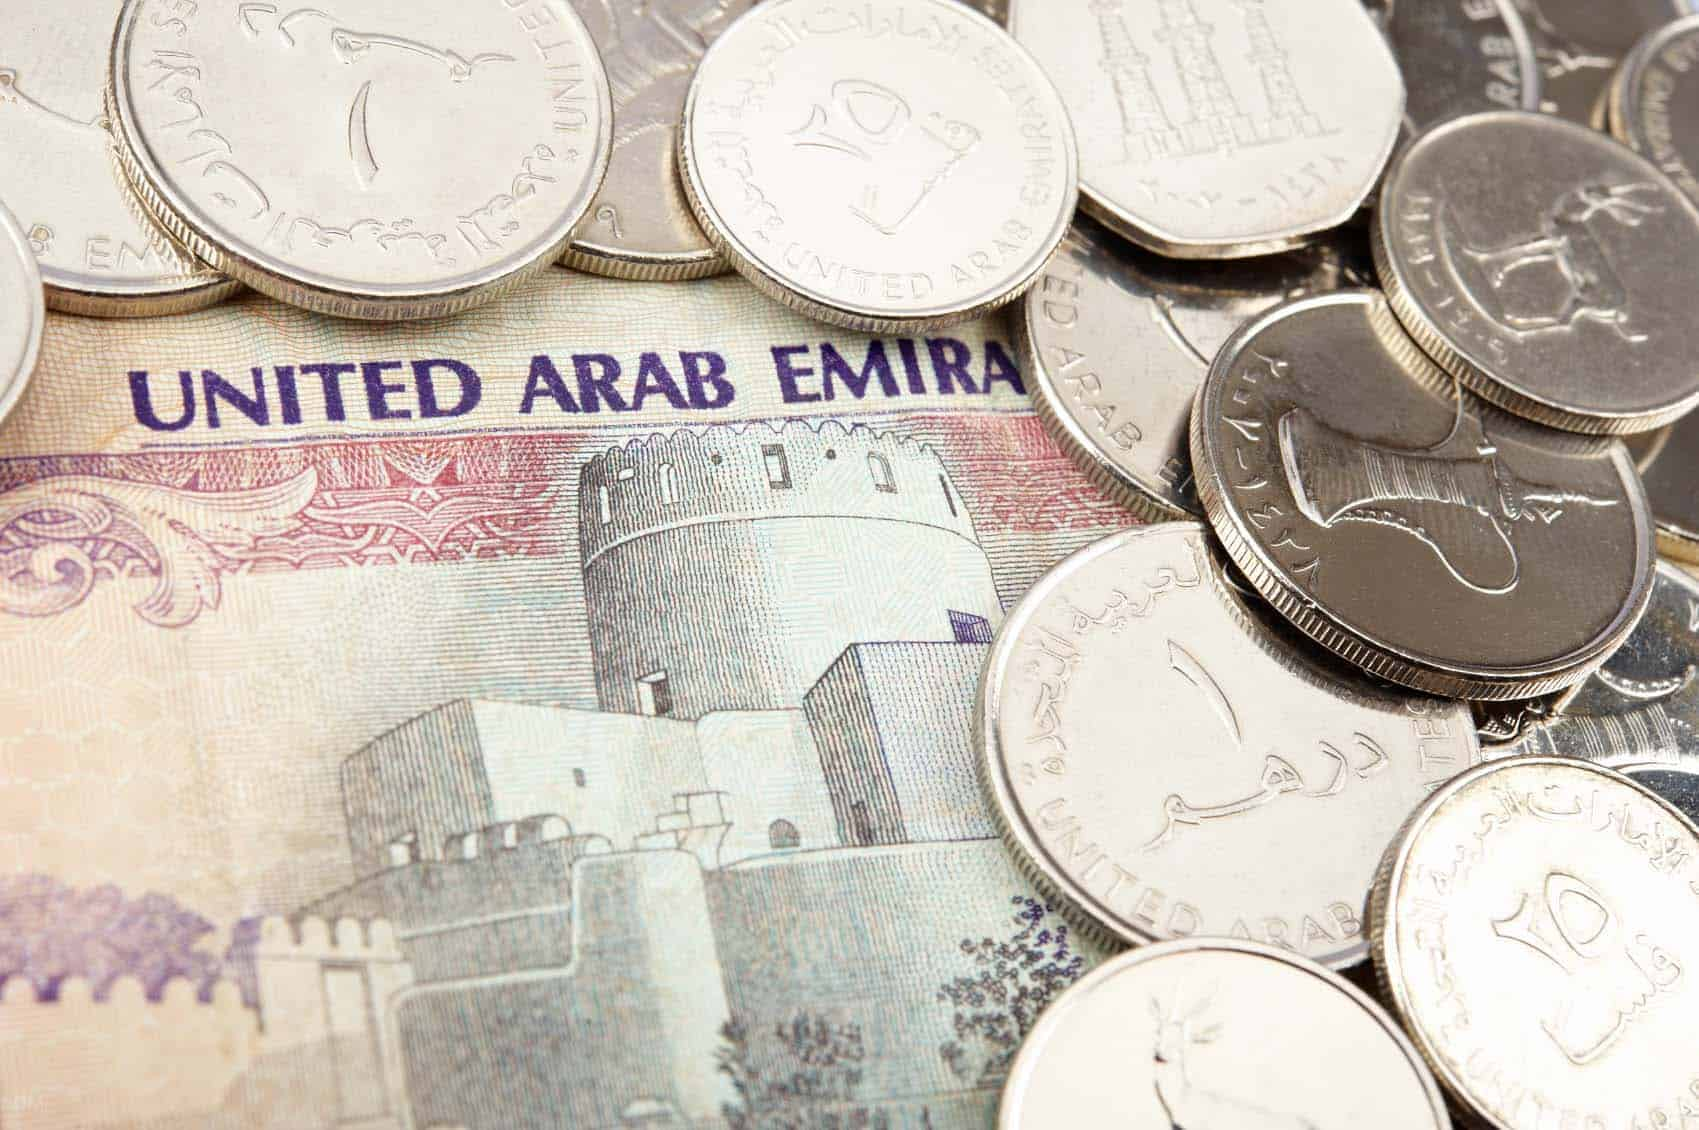 Dubai Currency Banks And Money